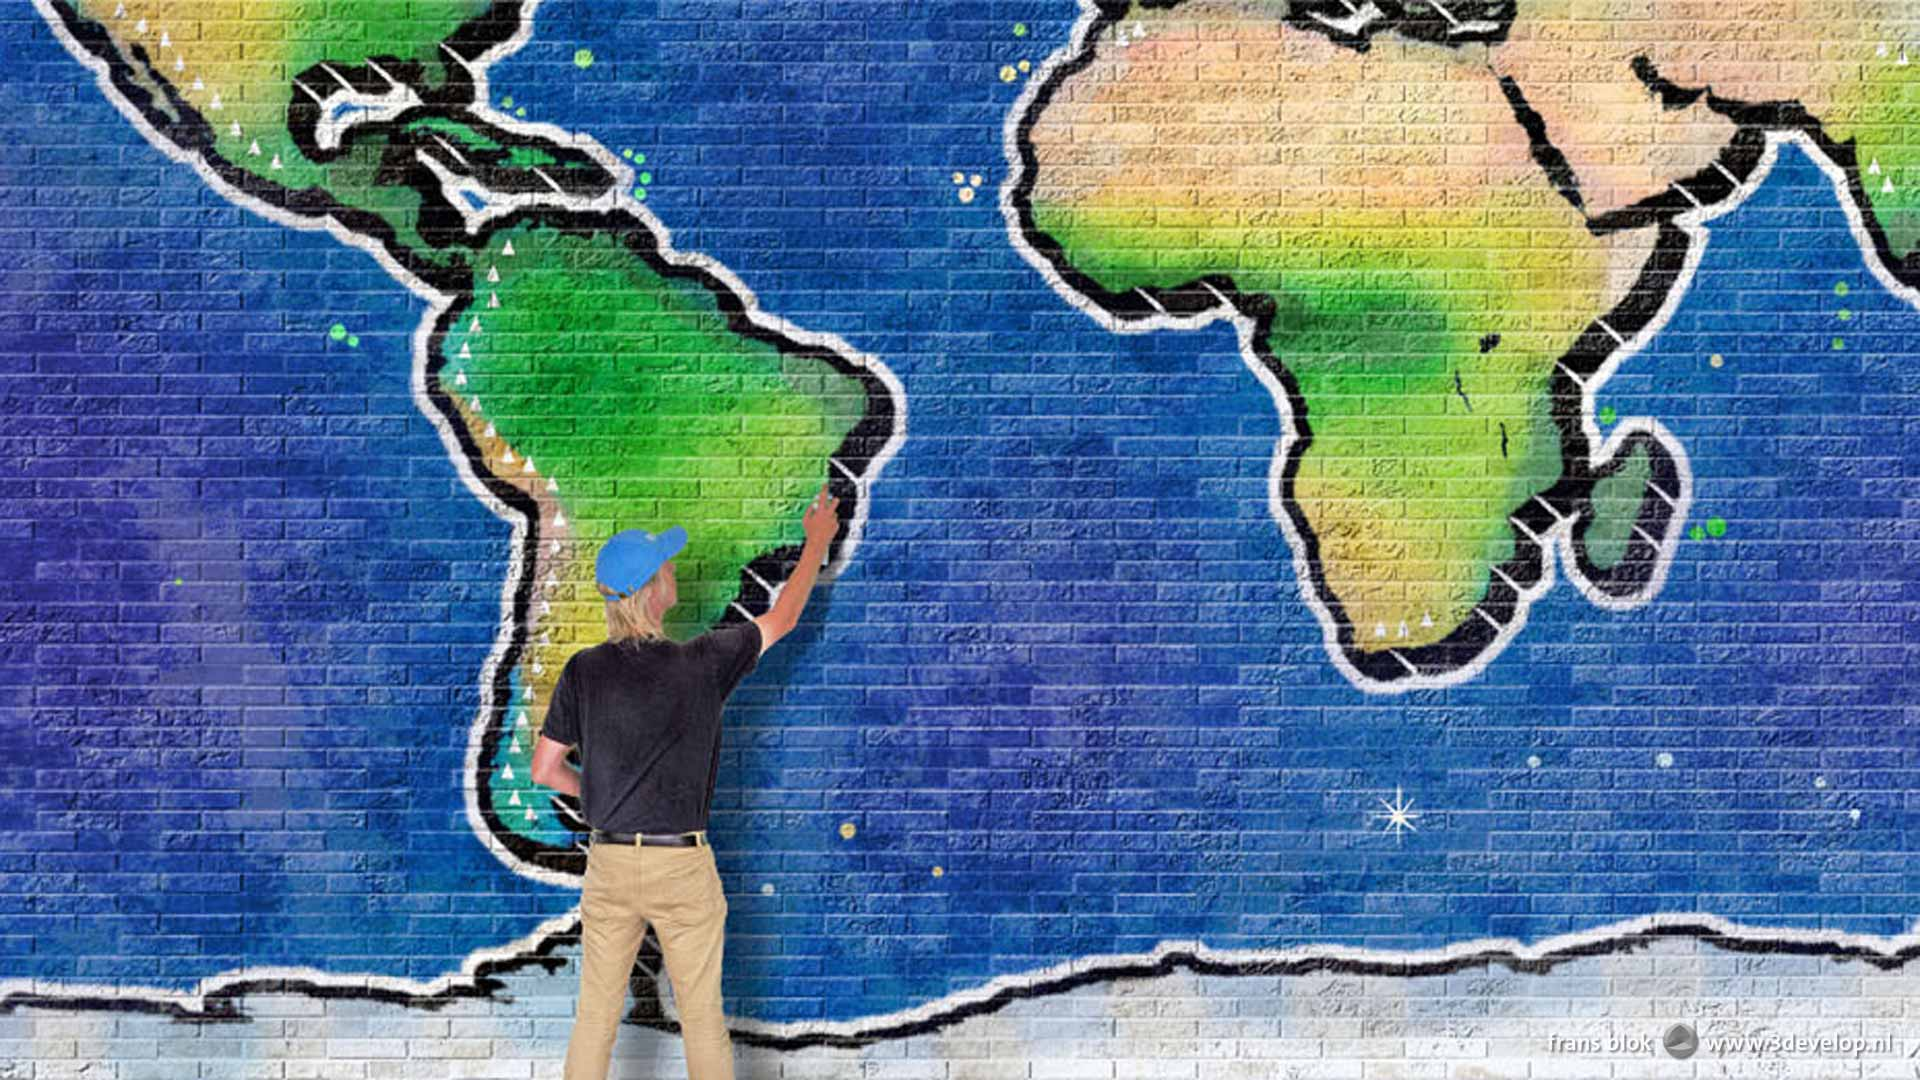 Work in progress by the author on a digital graffiti world map on a wall of ten by five metres